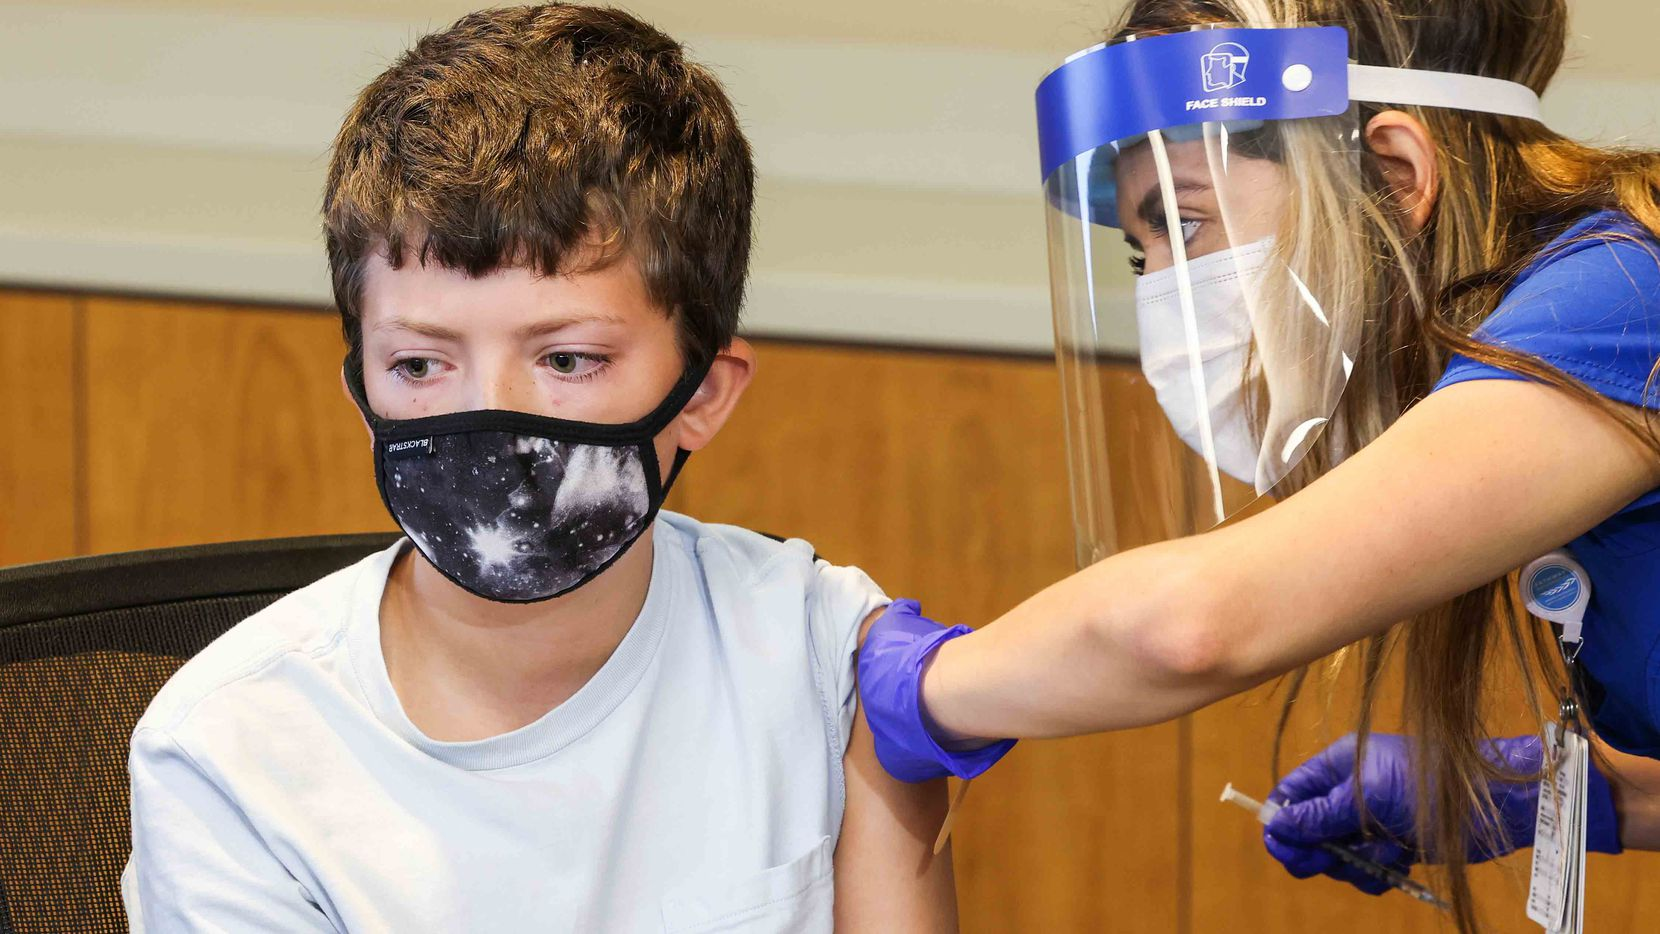 Henry Ricketts, 12, receives a COVID-19 vaccine as one of the first minors under 16 years old to get vaccinated in Dallas County at WISH Clinic Building at Parkland Memorial Hospital in Dallas on Thursday, May 13, 2021. (Lola Gomez/The Dallas Morning News)